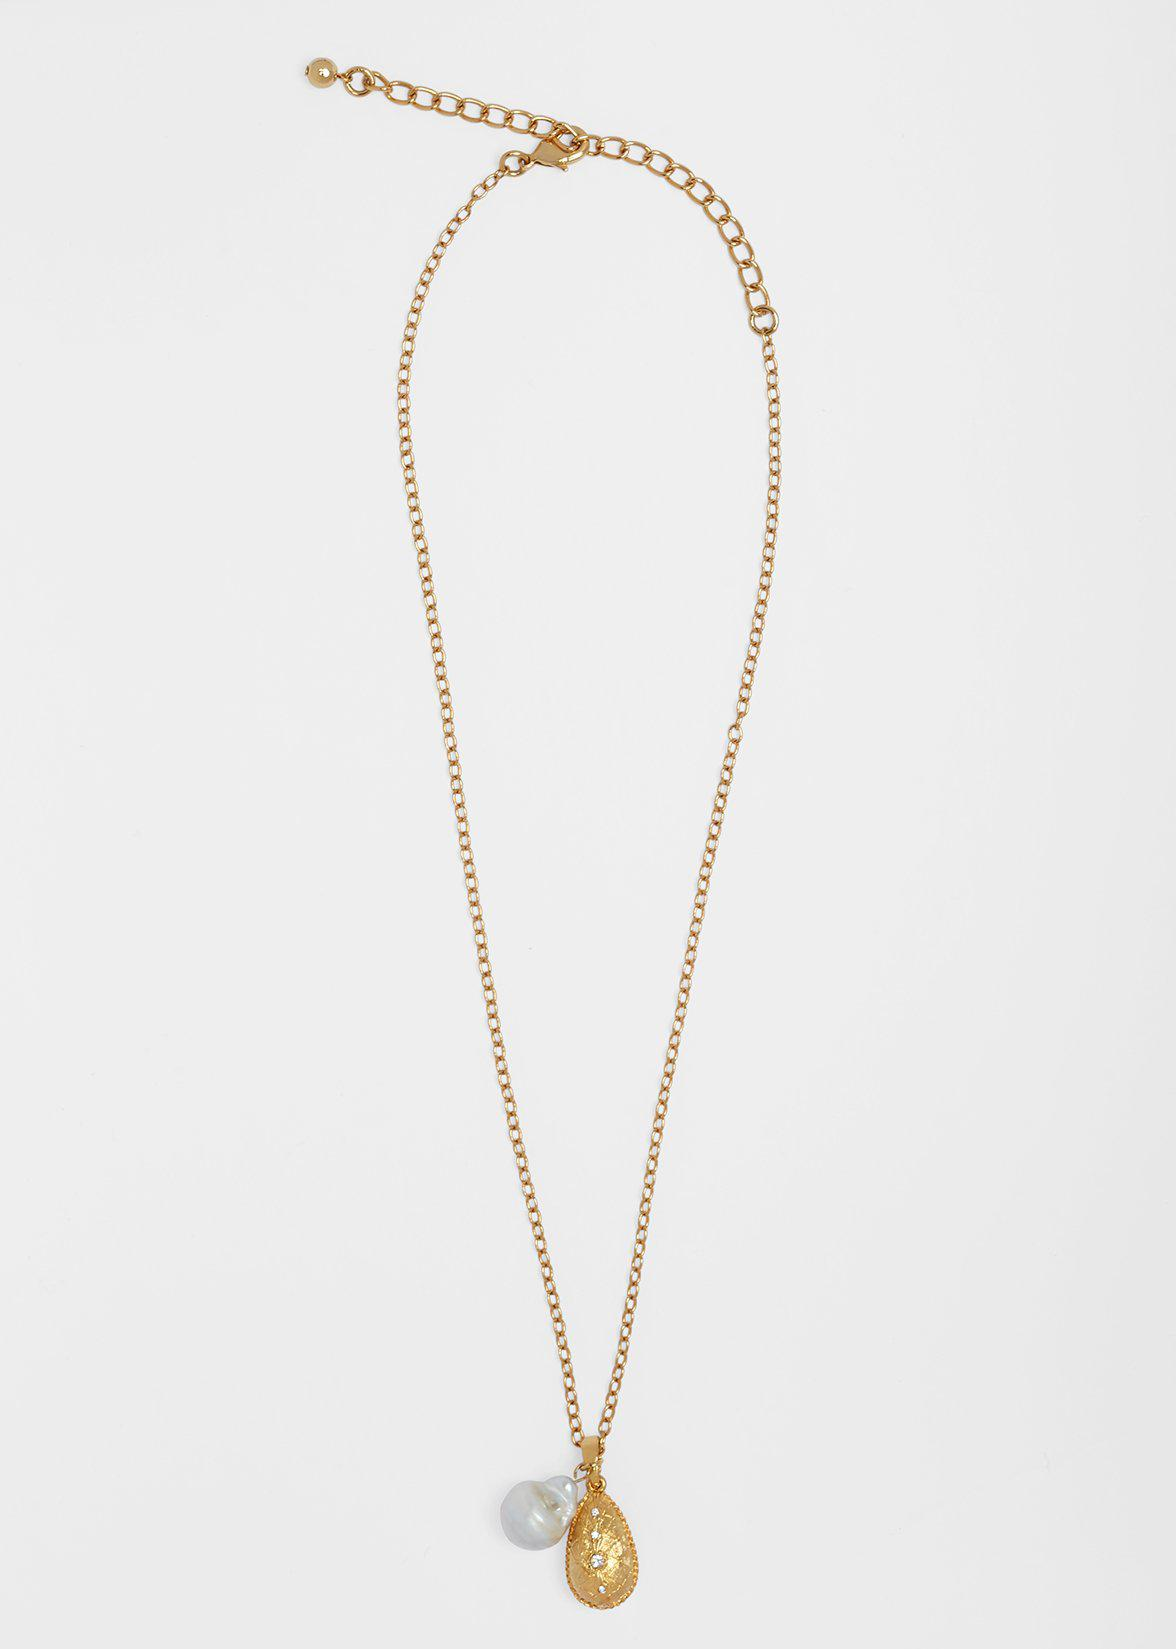 TEARDROP NECKLACE WITH FRESHWATER PEARL